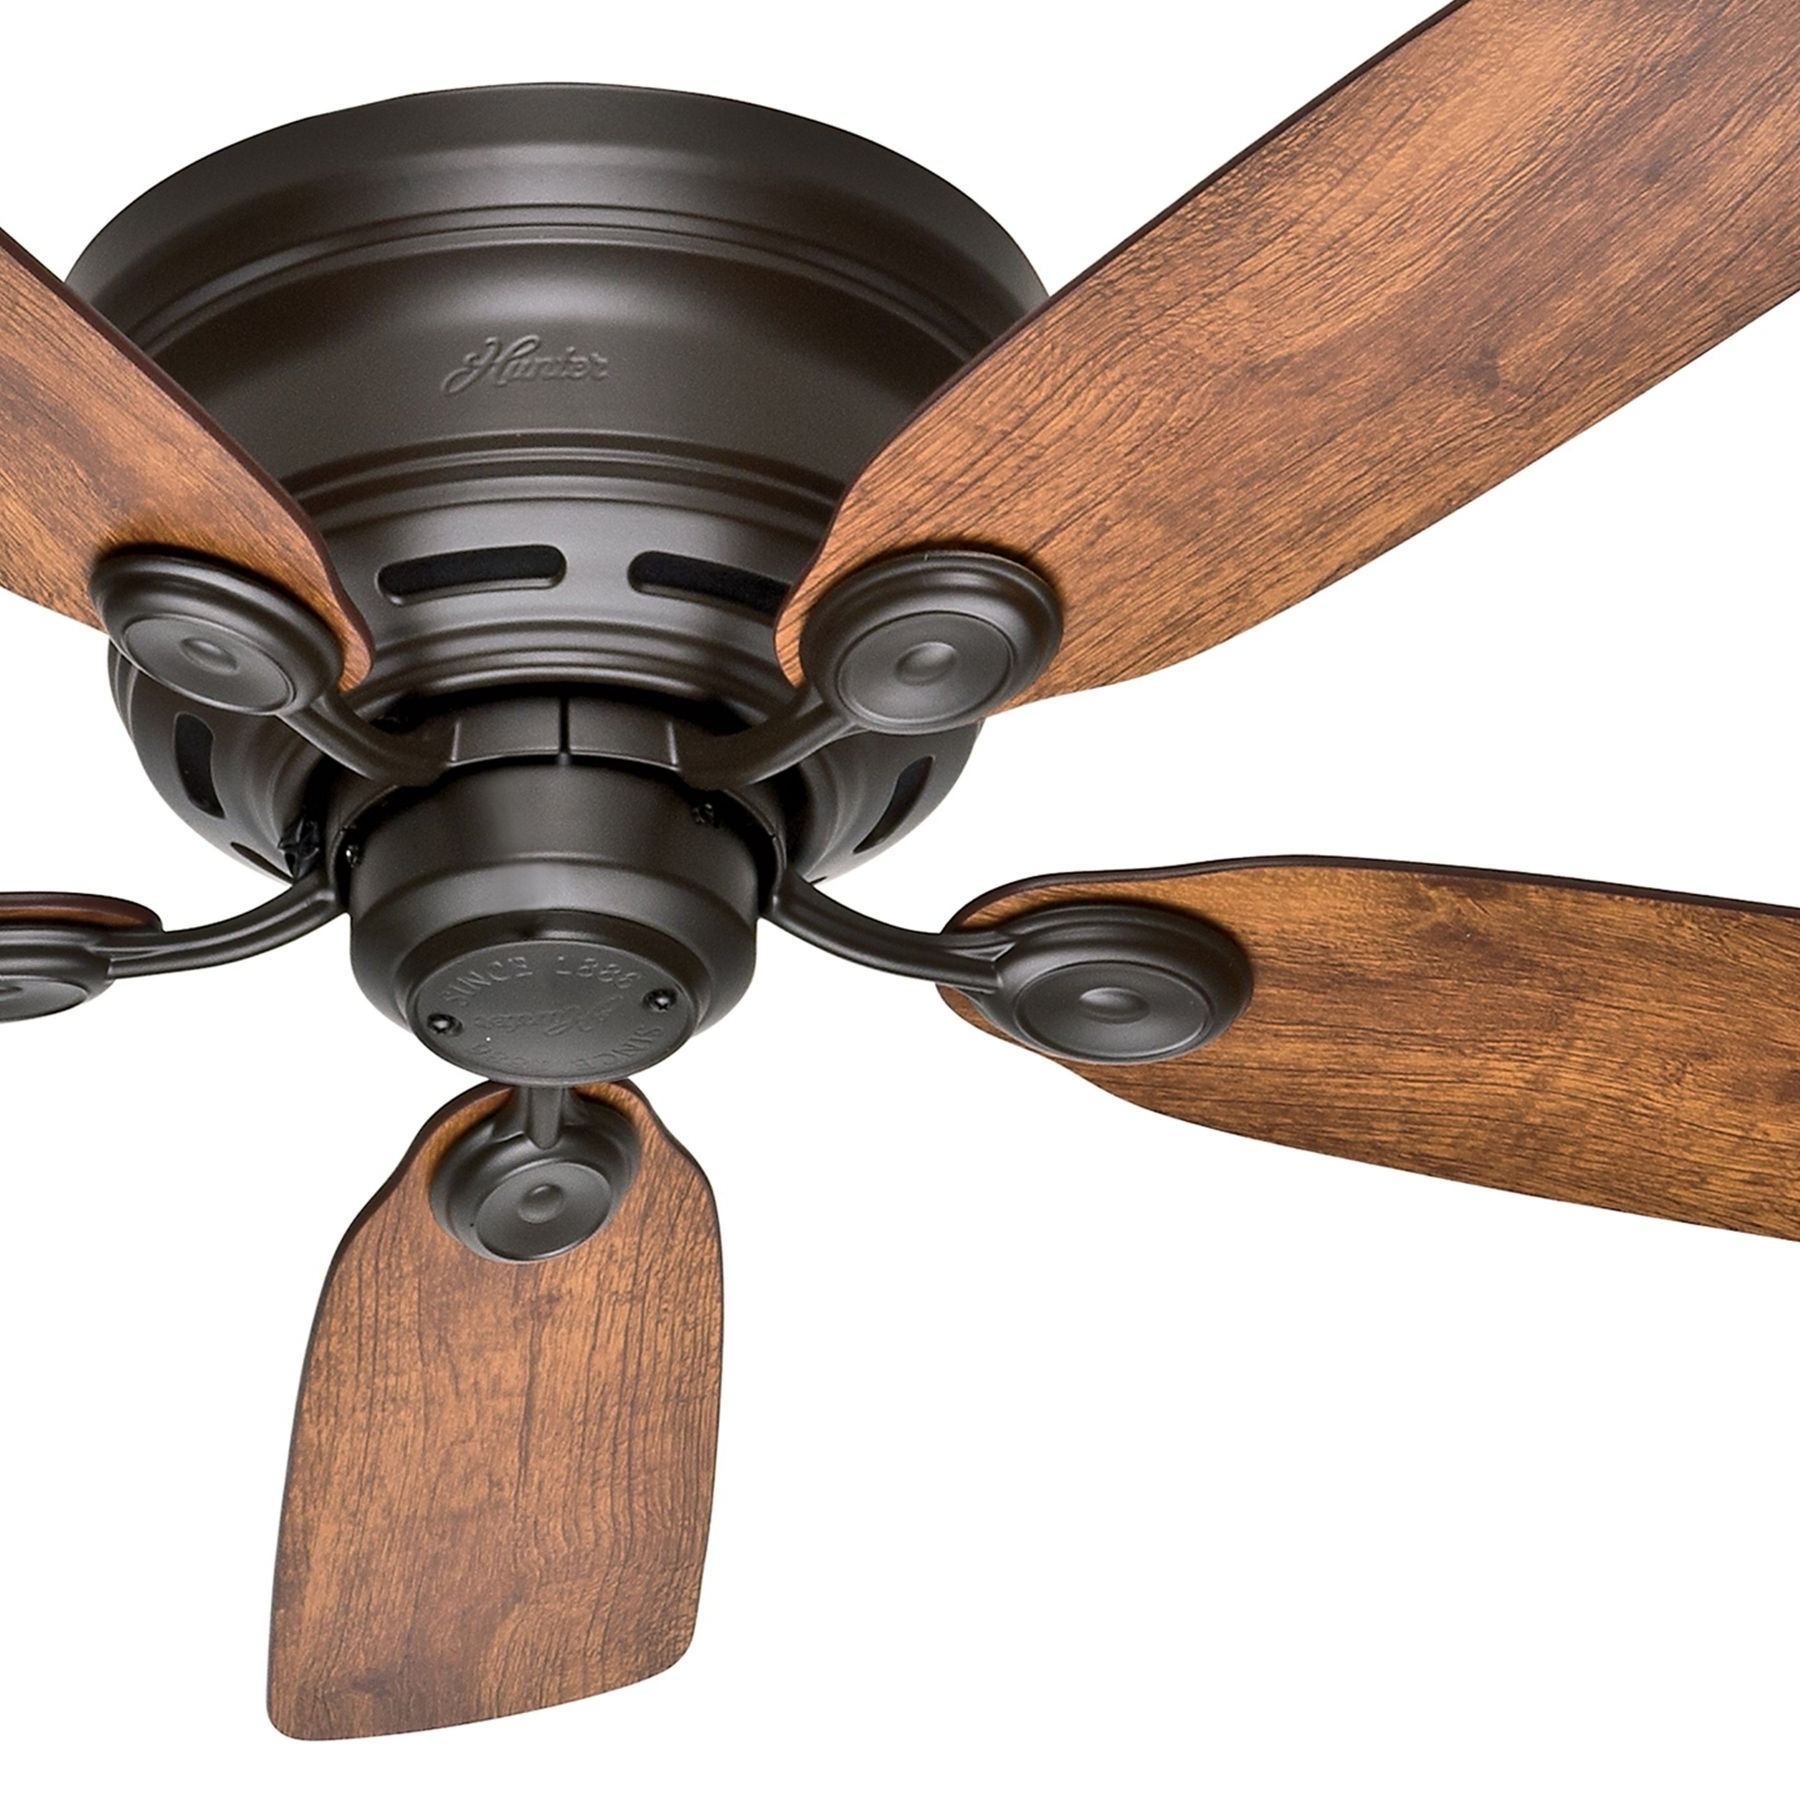 Outdoor Ceiling Fans With Speakers With Regard To Most Recently Released Fascinating Hunter Outdoor Ceiling Fans Without Lights U Image Of (View 16 of 20)